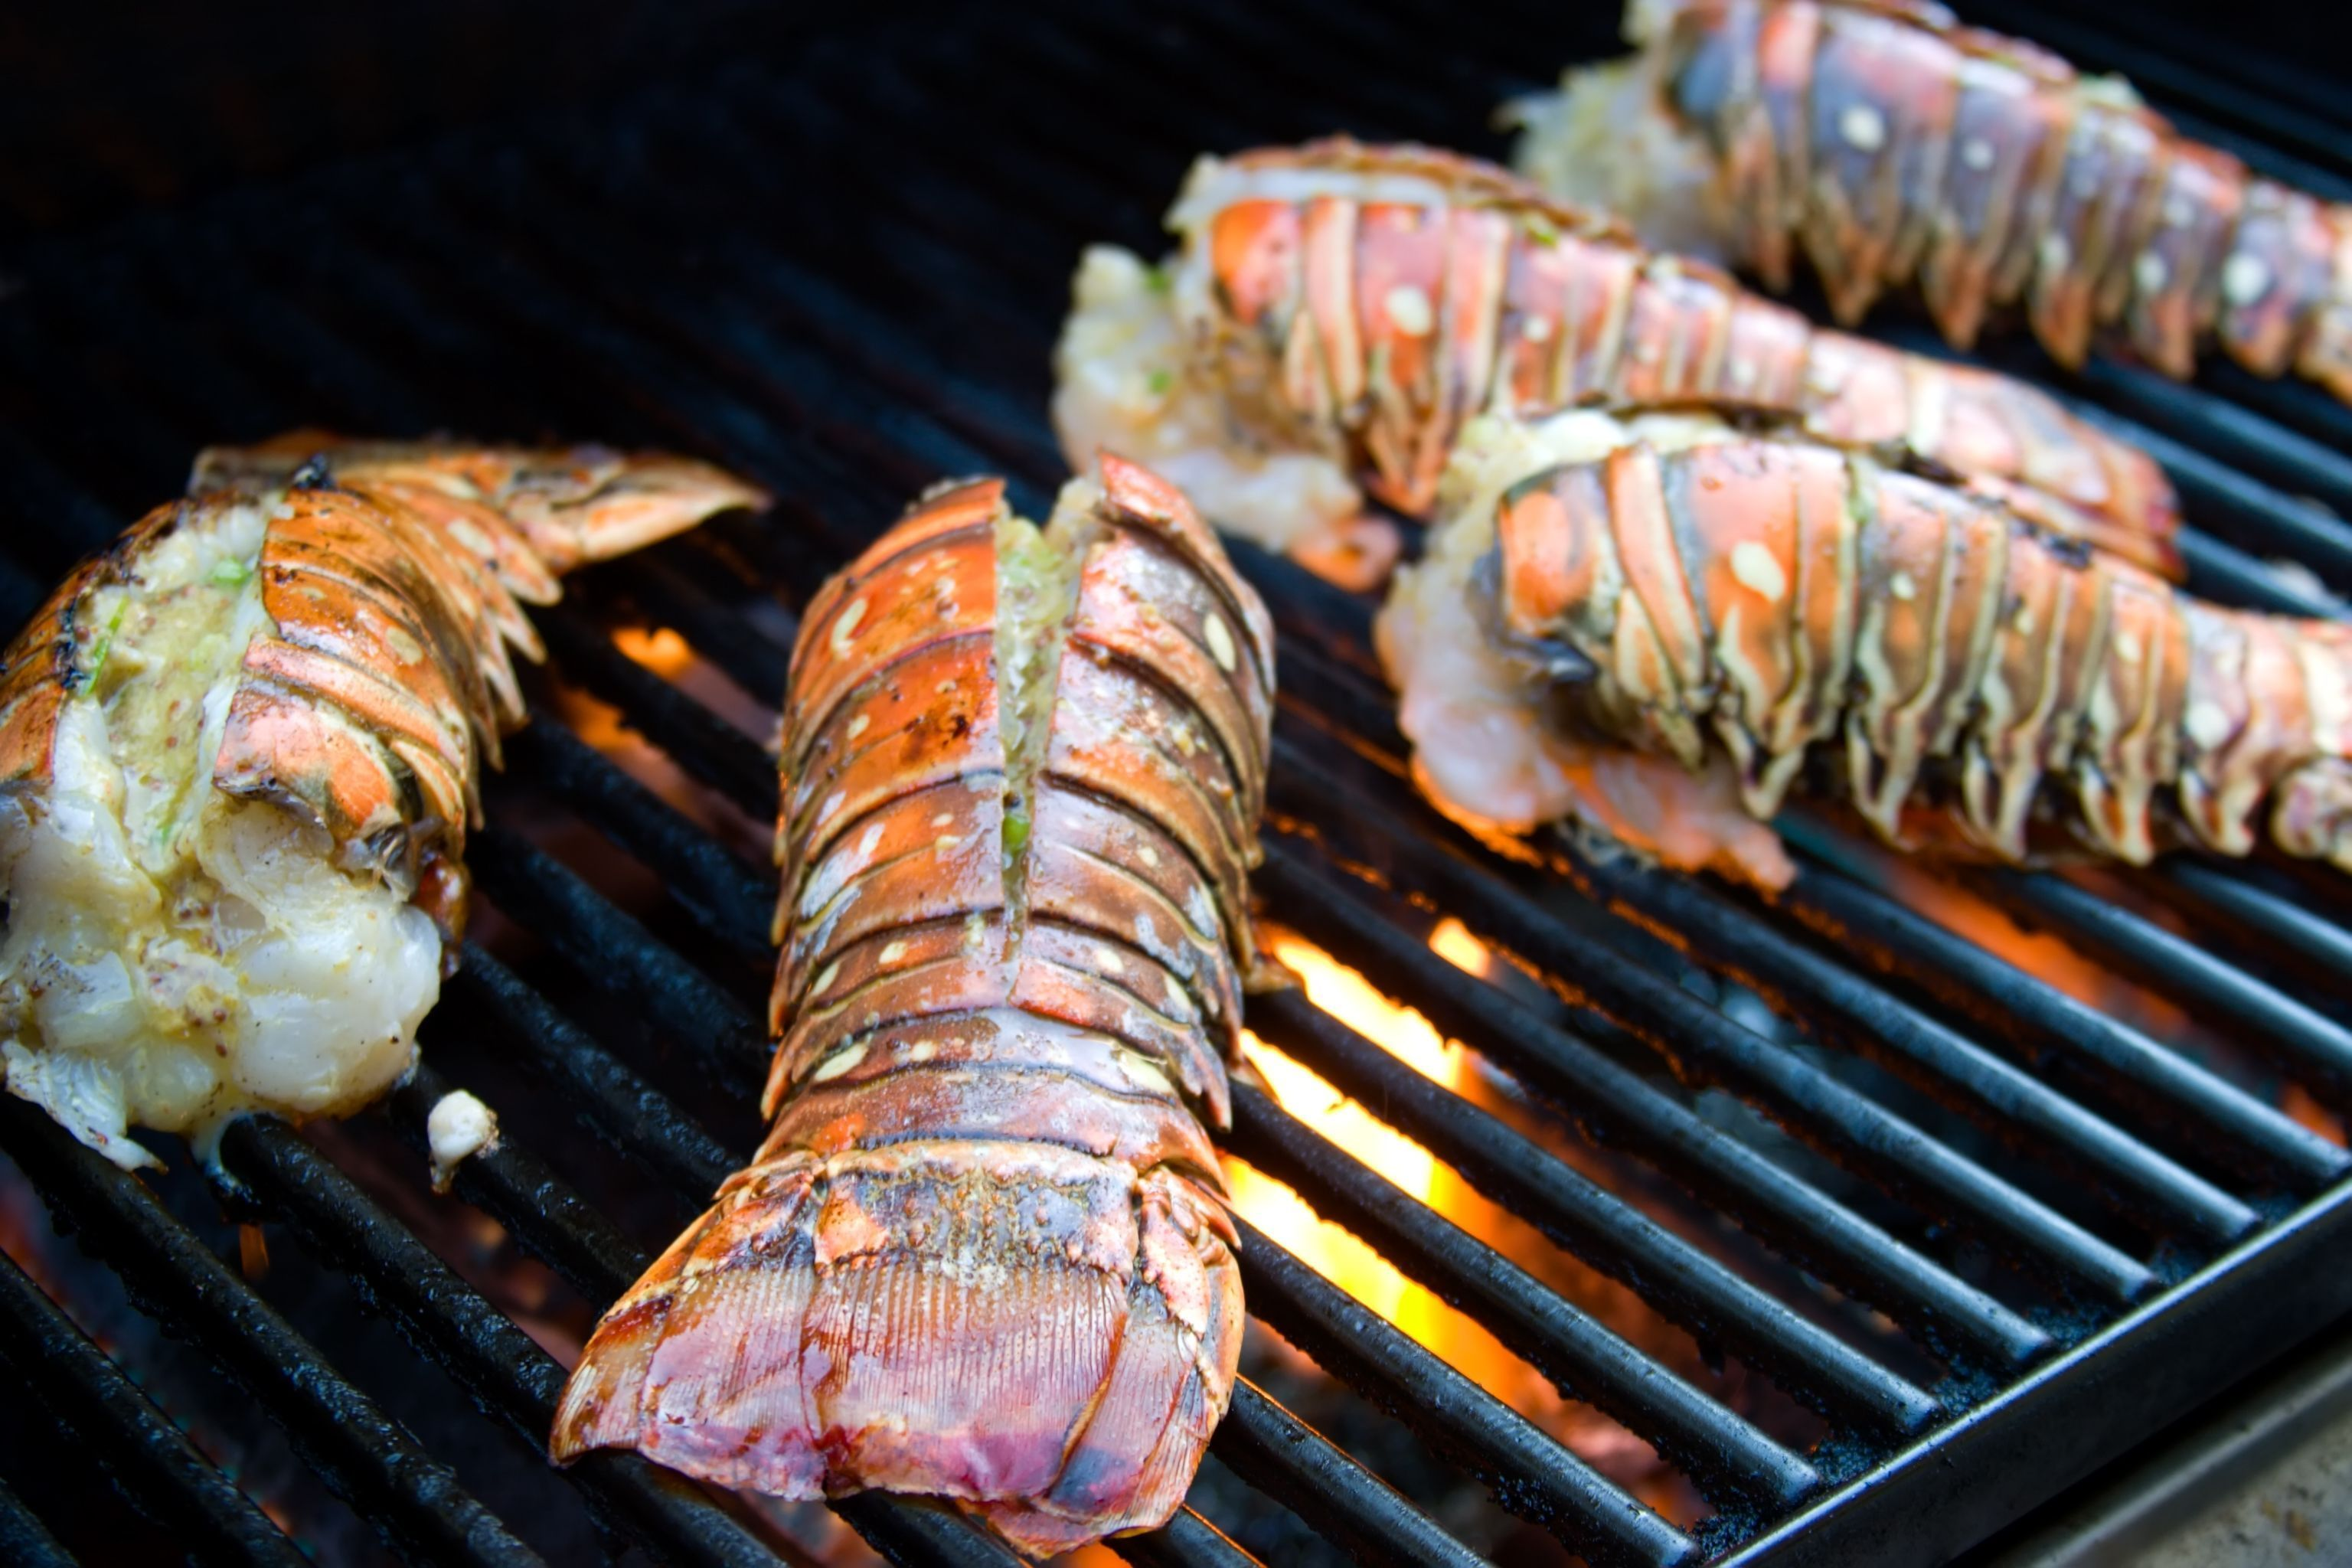 How to BBQ a Lobster Tail | eHow.com #lobstertail How to BBQ a Lobster Tail | eHow.com #lobstertail How to BBQ a Lobster Tail | eHow.com #lobstertail How to BBQ a Lobster Tail | eHow.com #lobstertail